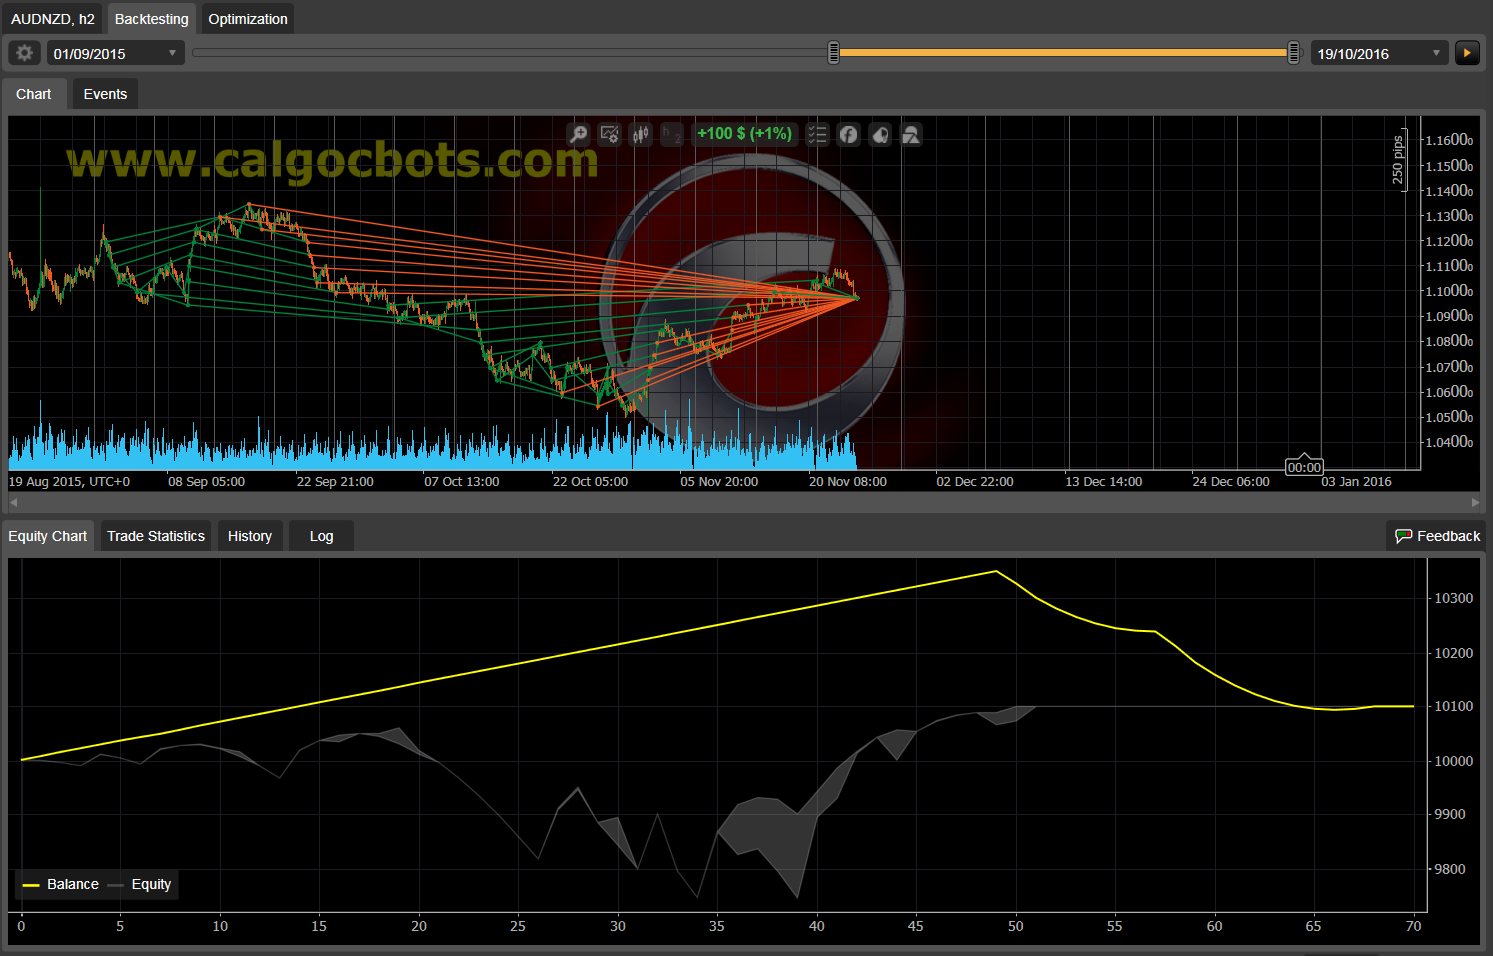 Dual Grid Hedge AUD NZD 1h cAlgo cBots cTrader 1k 100 50 100 - 02 a